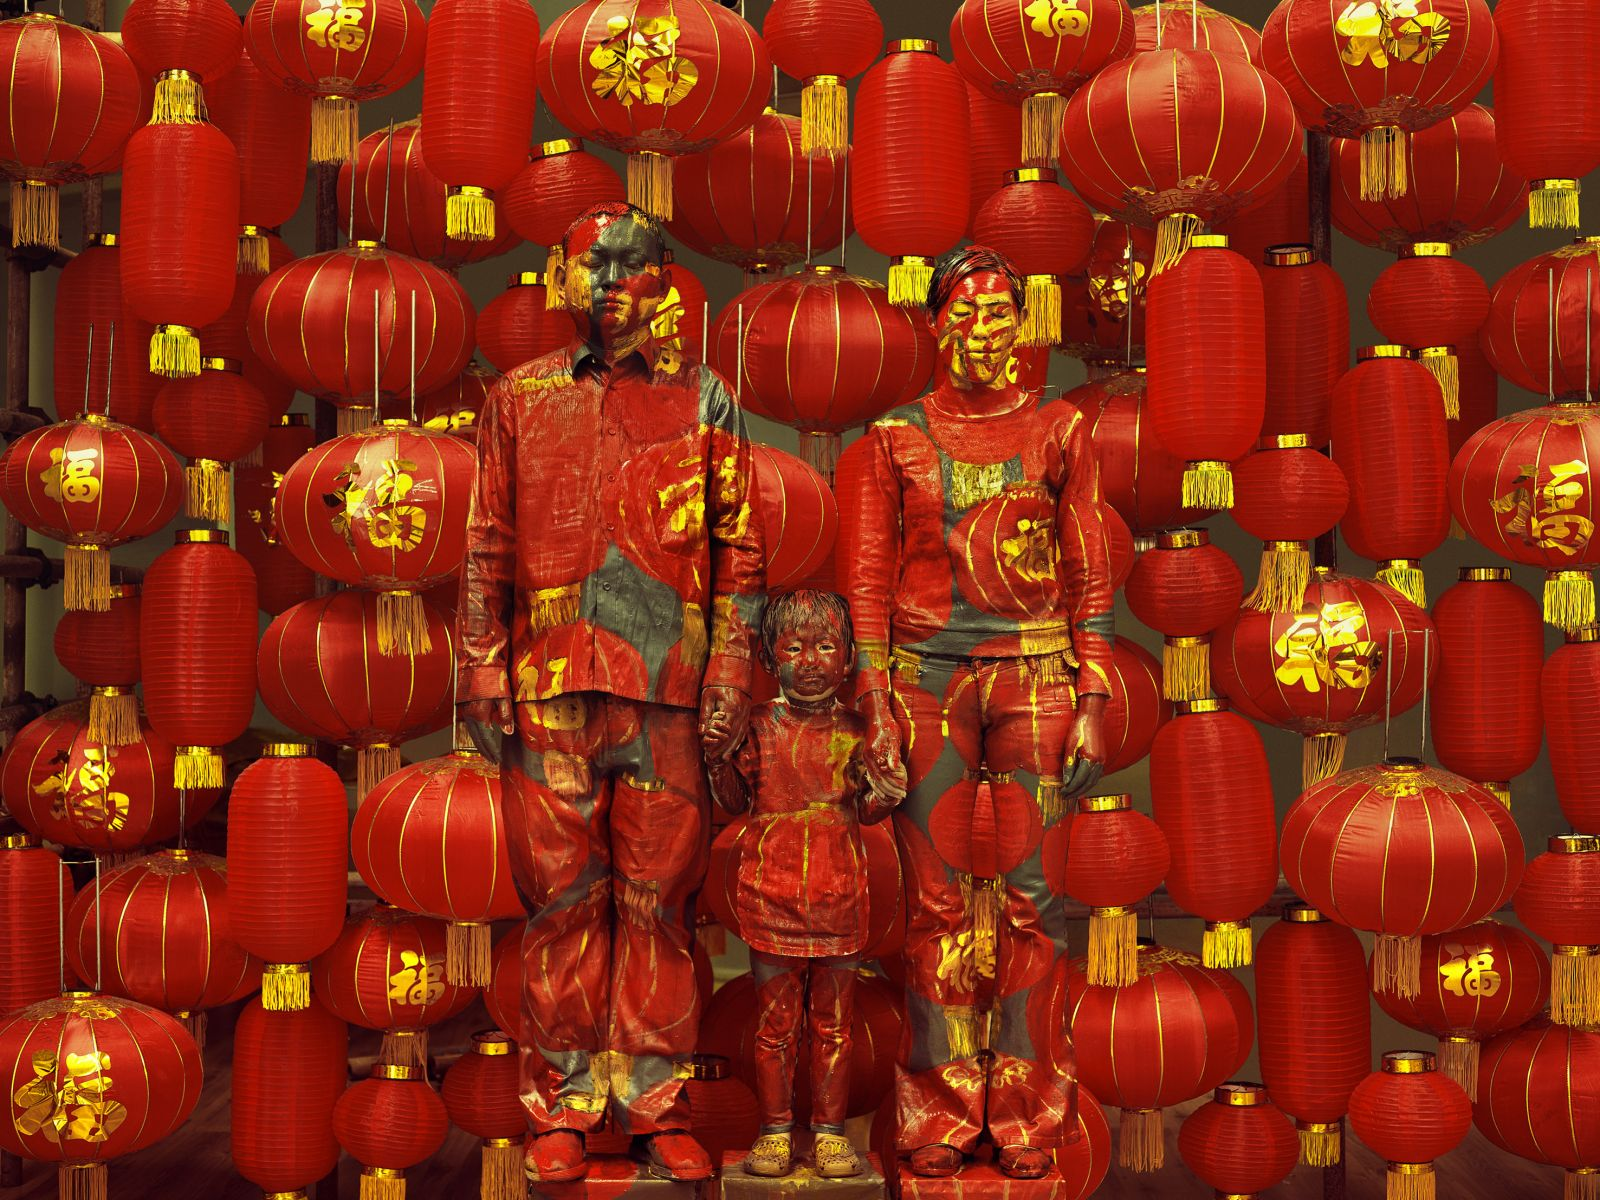 Liu Bolin - Ghost stories